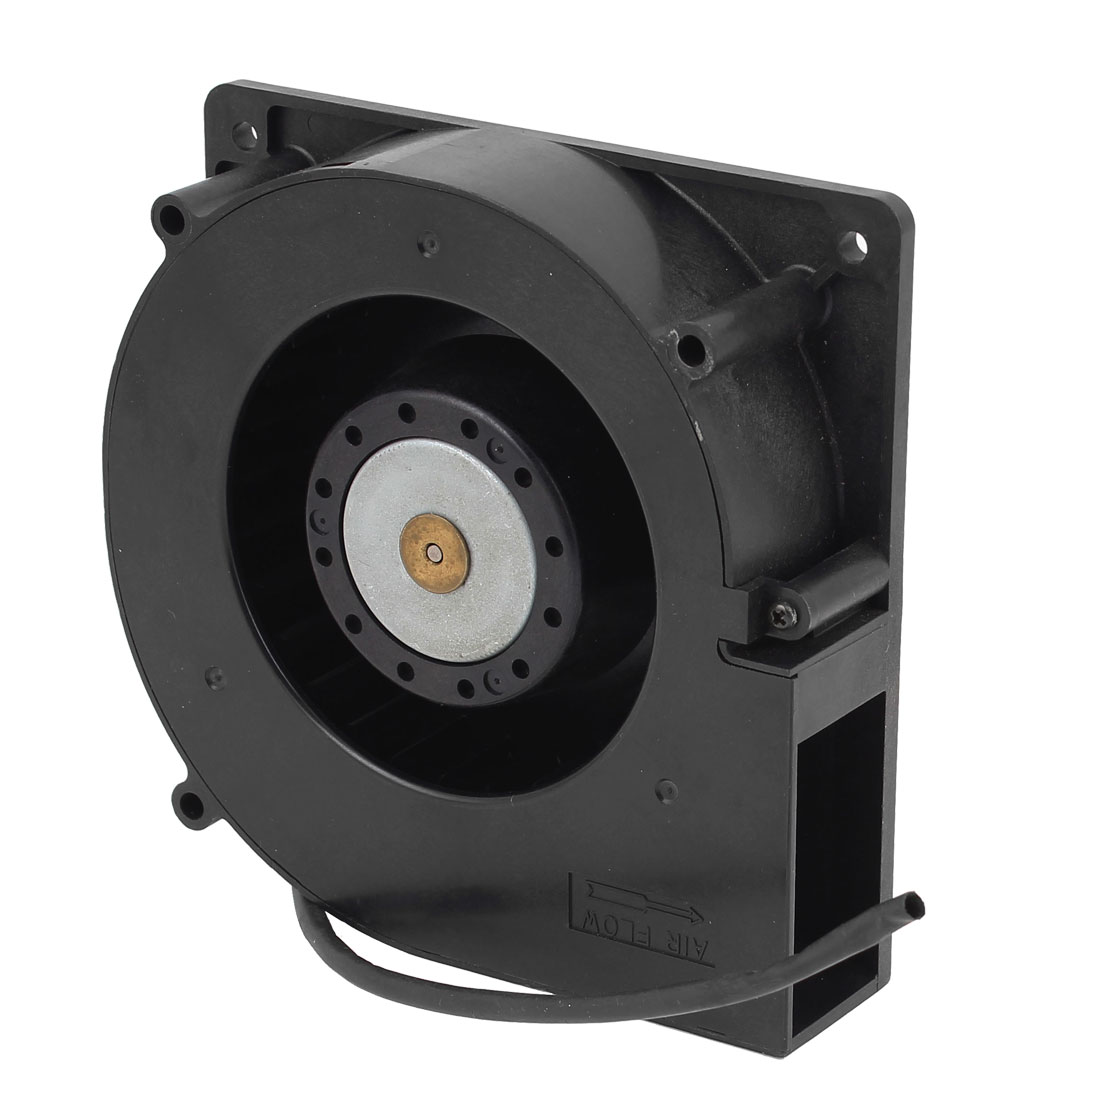 Turbine Black Brushless DC Cooling Blower Fan 12V 0.6A